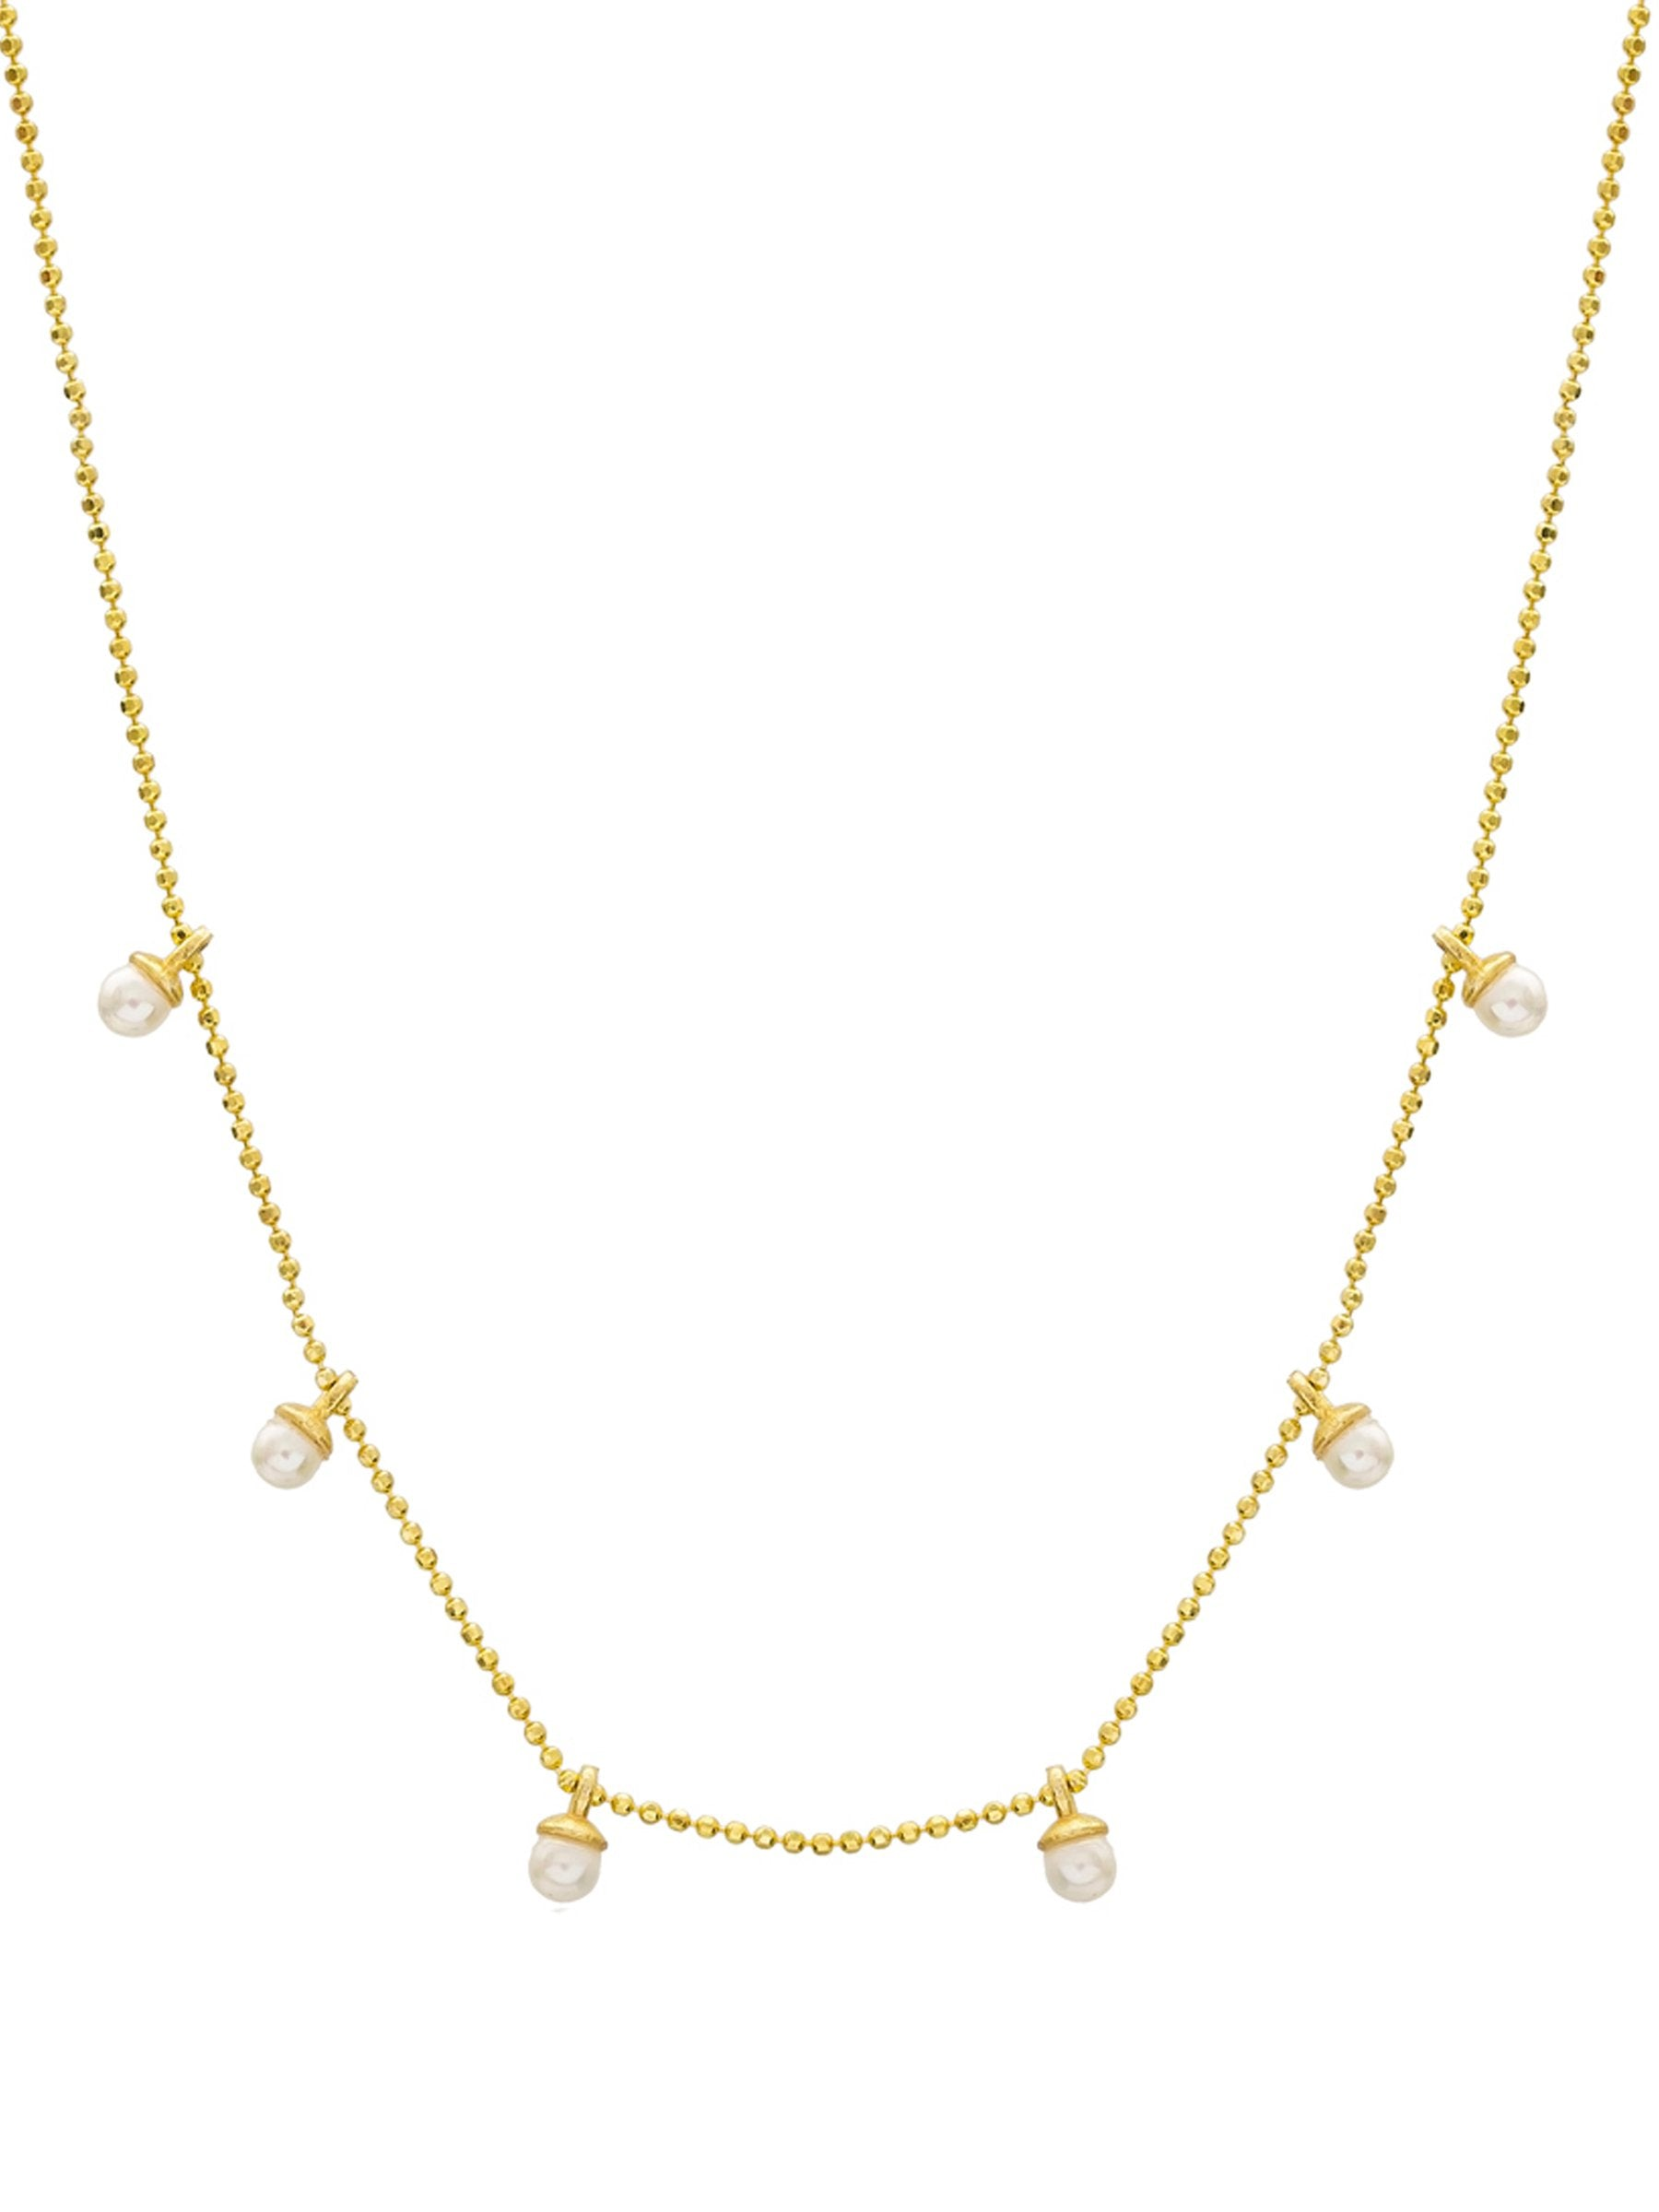 Venus Dainty Chain Necklace with tiny pearls